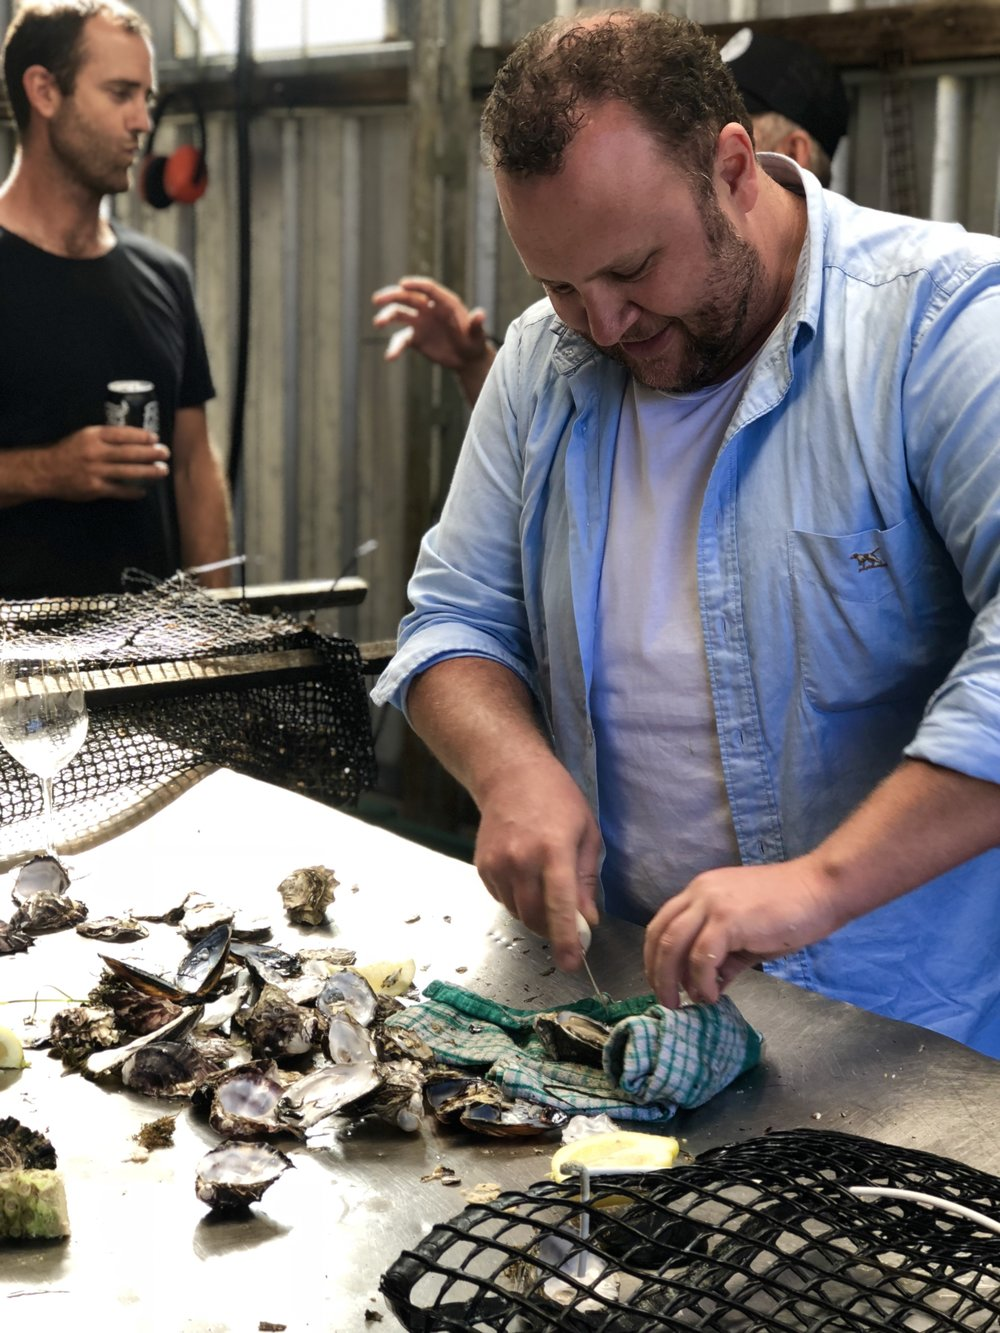 CHEF BEN TURNER SHUCKING FRESH TASSIE OYSTERS TO KICK OFF THE TOUR.